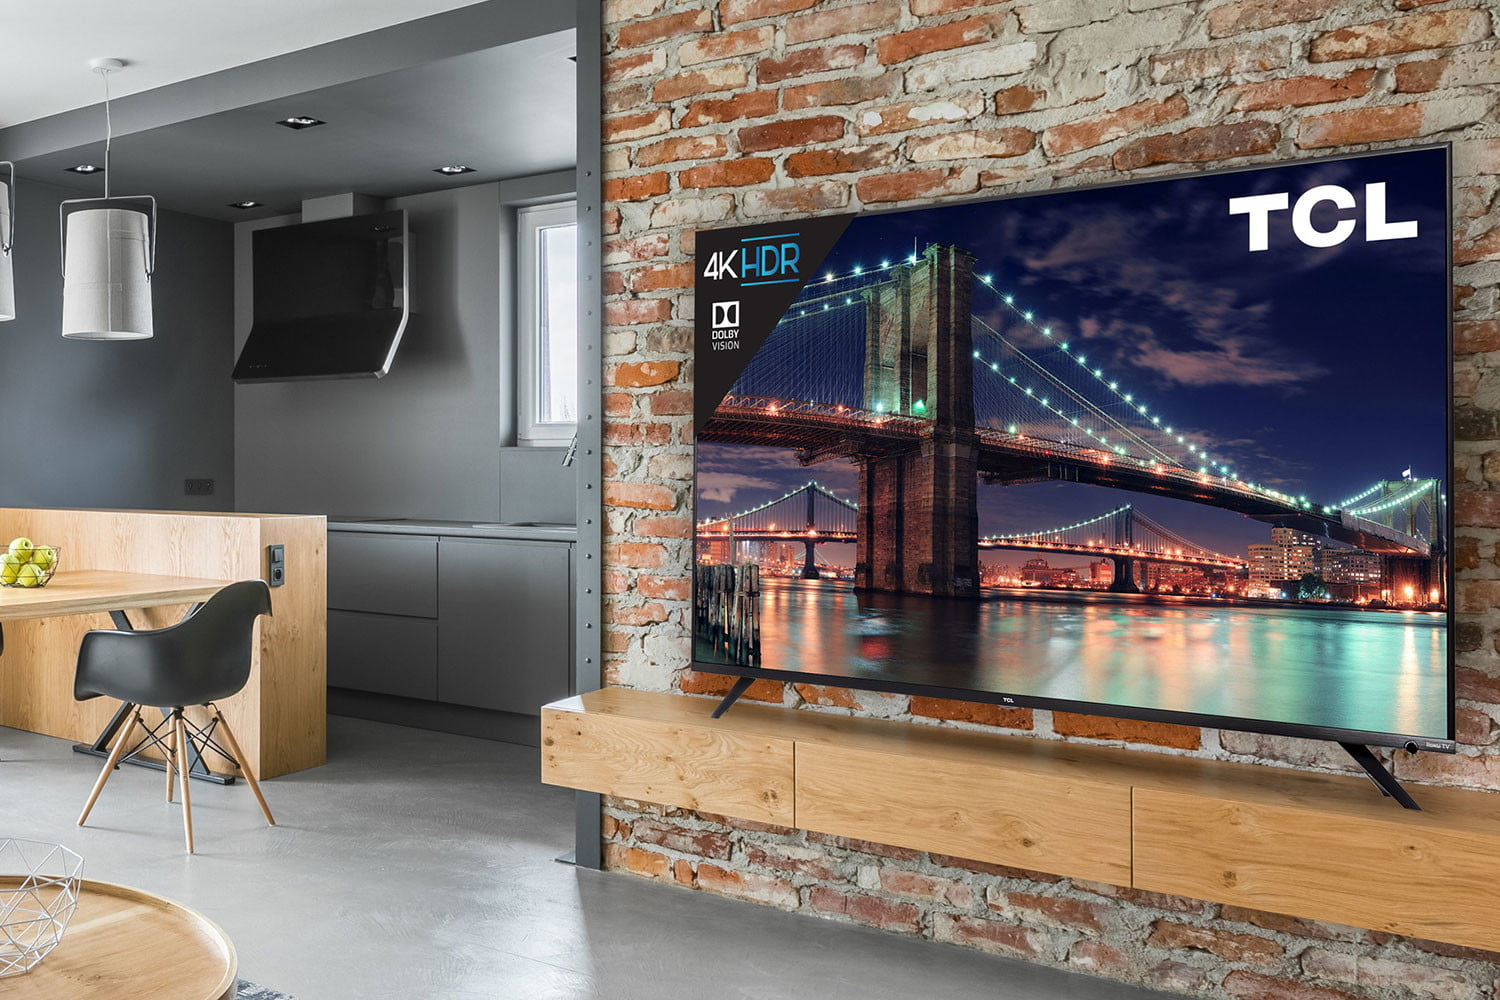 TCL's decked-out 6 Series TVs are so affordable it's almost unfair